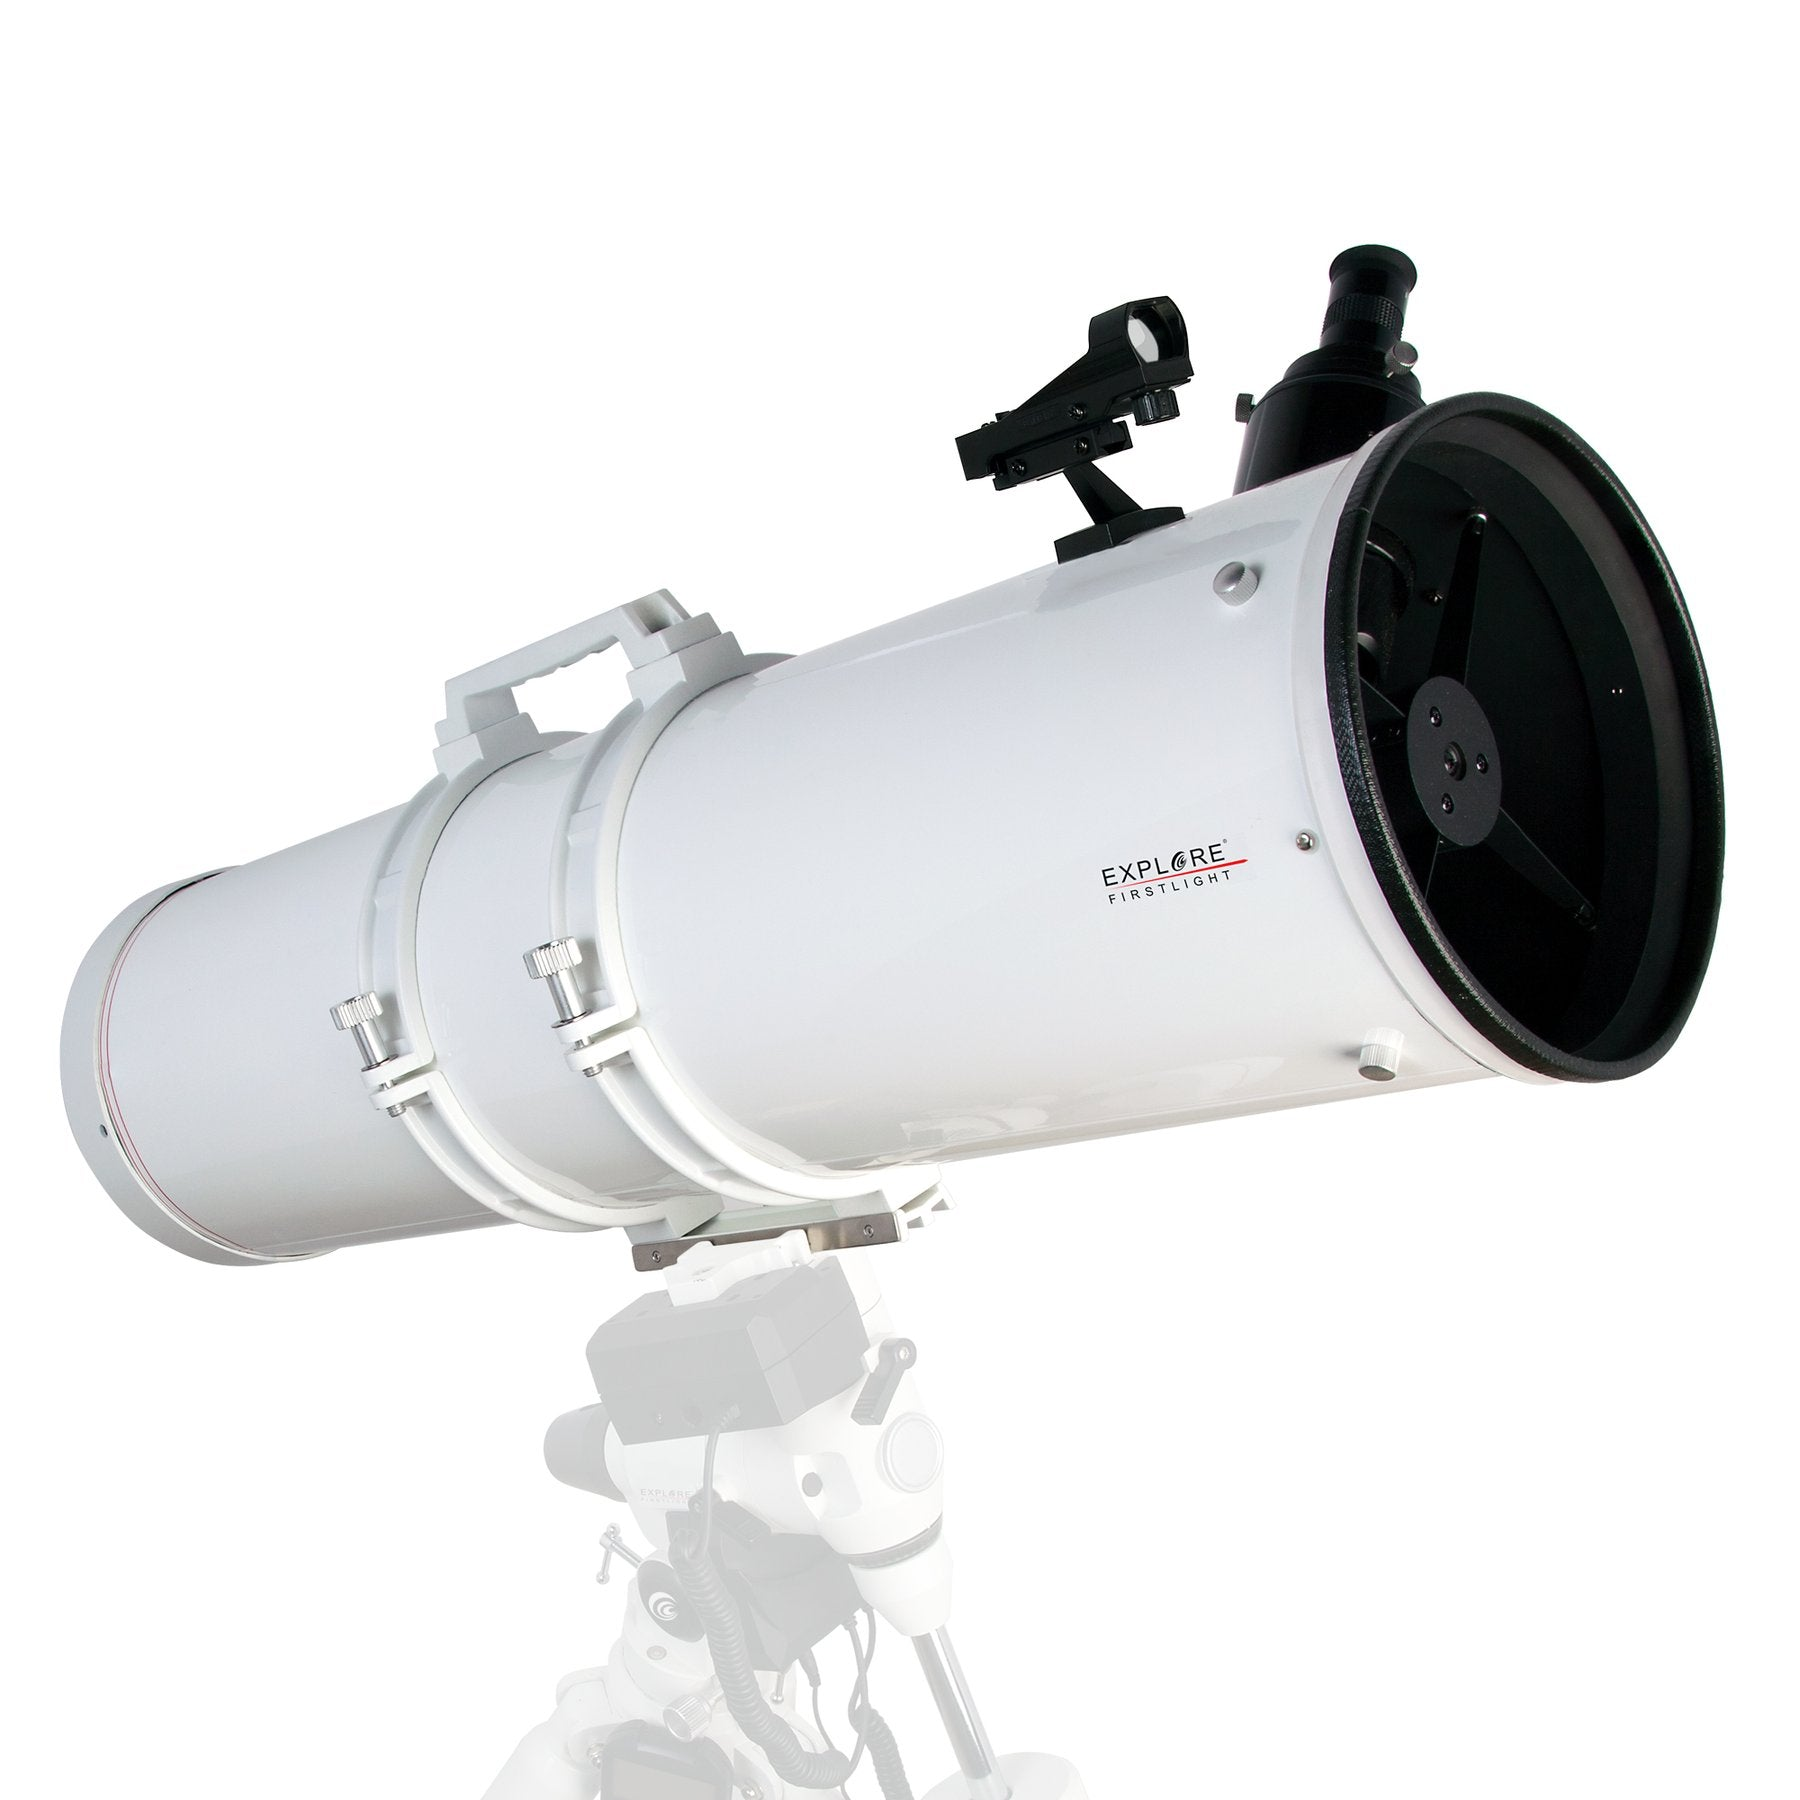 Explore FirstLight 203mm Newtonian - Optical Tube Only